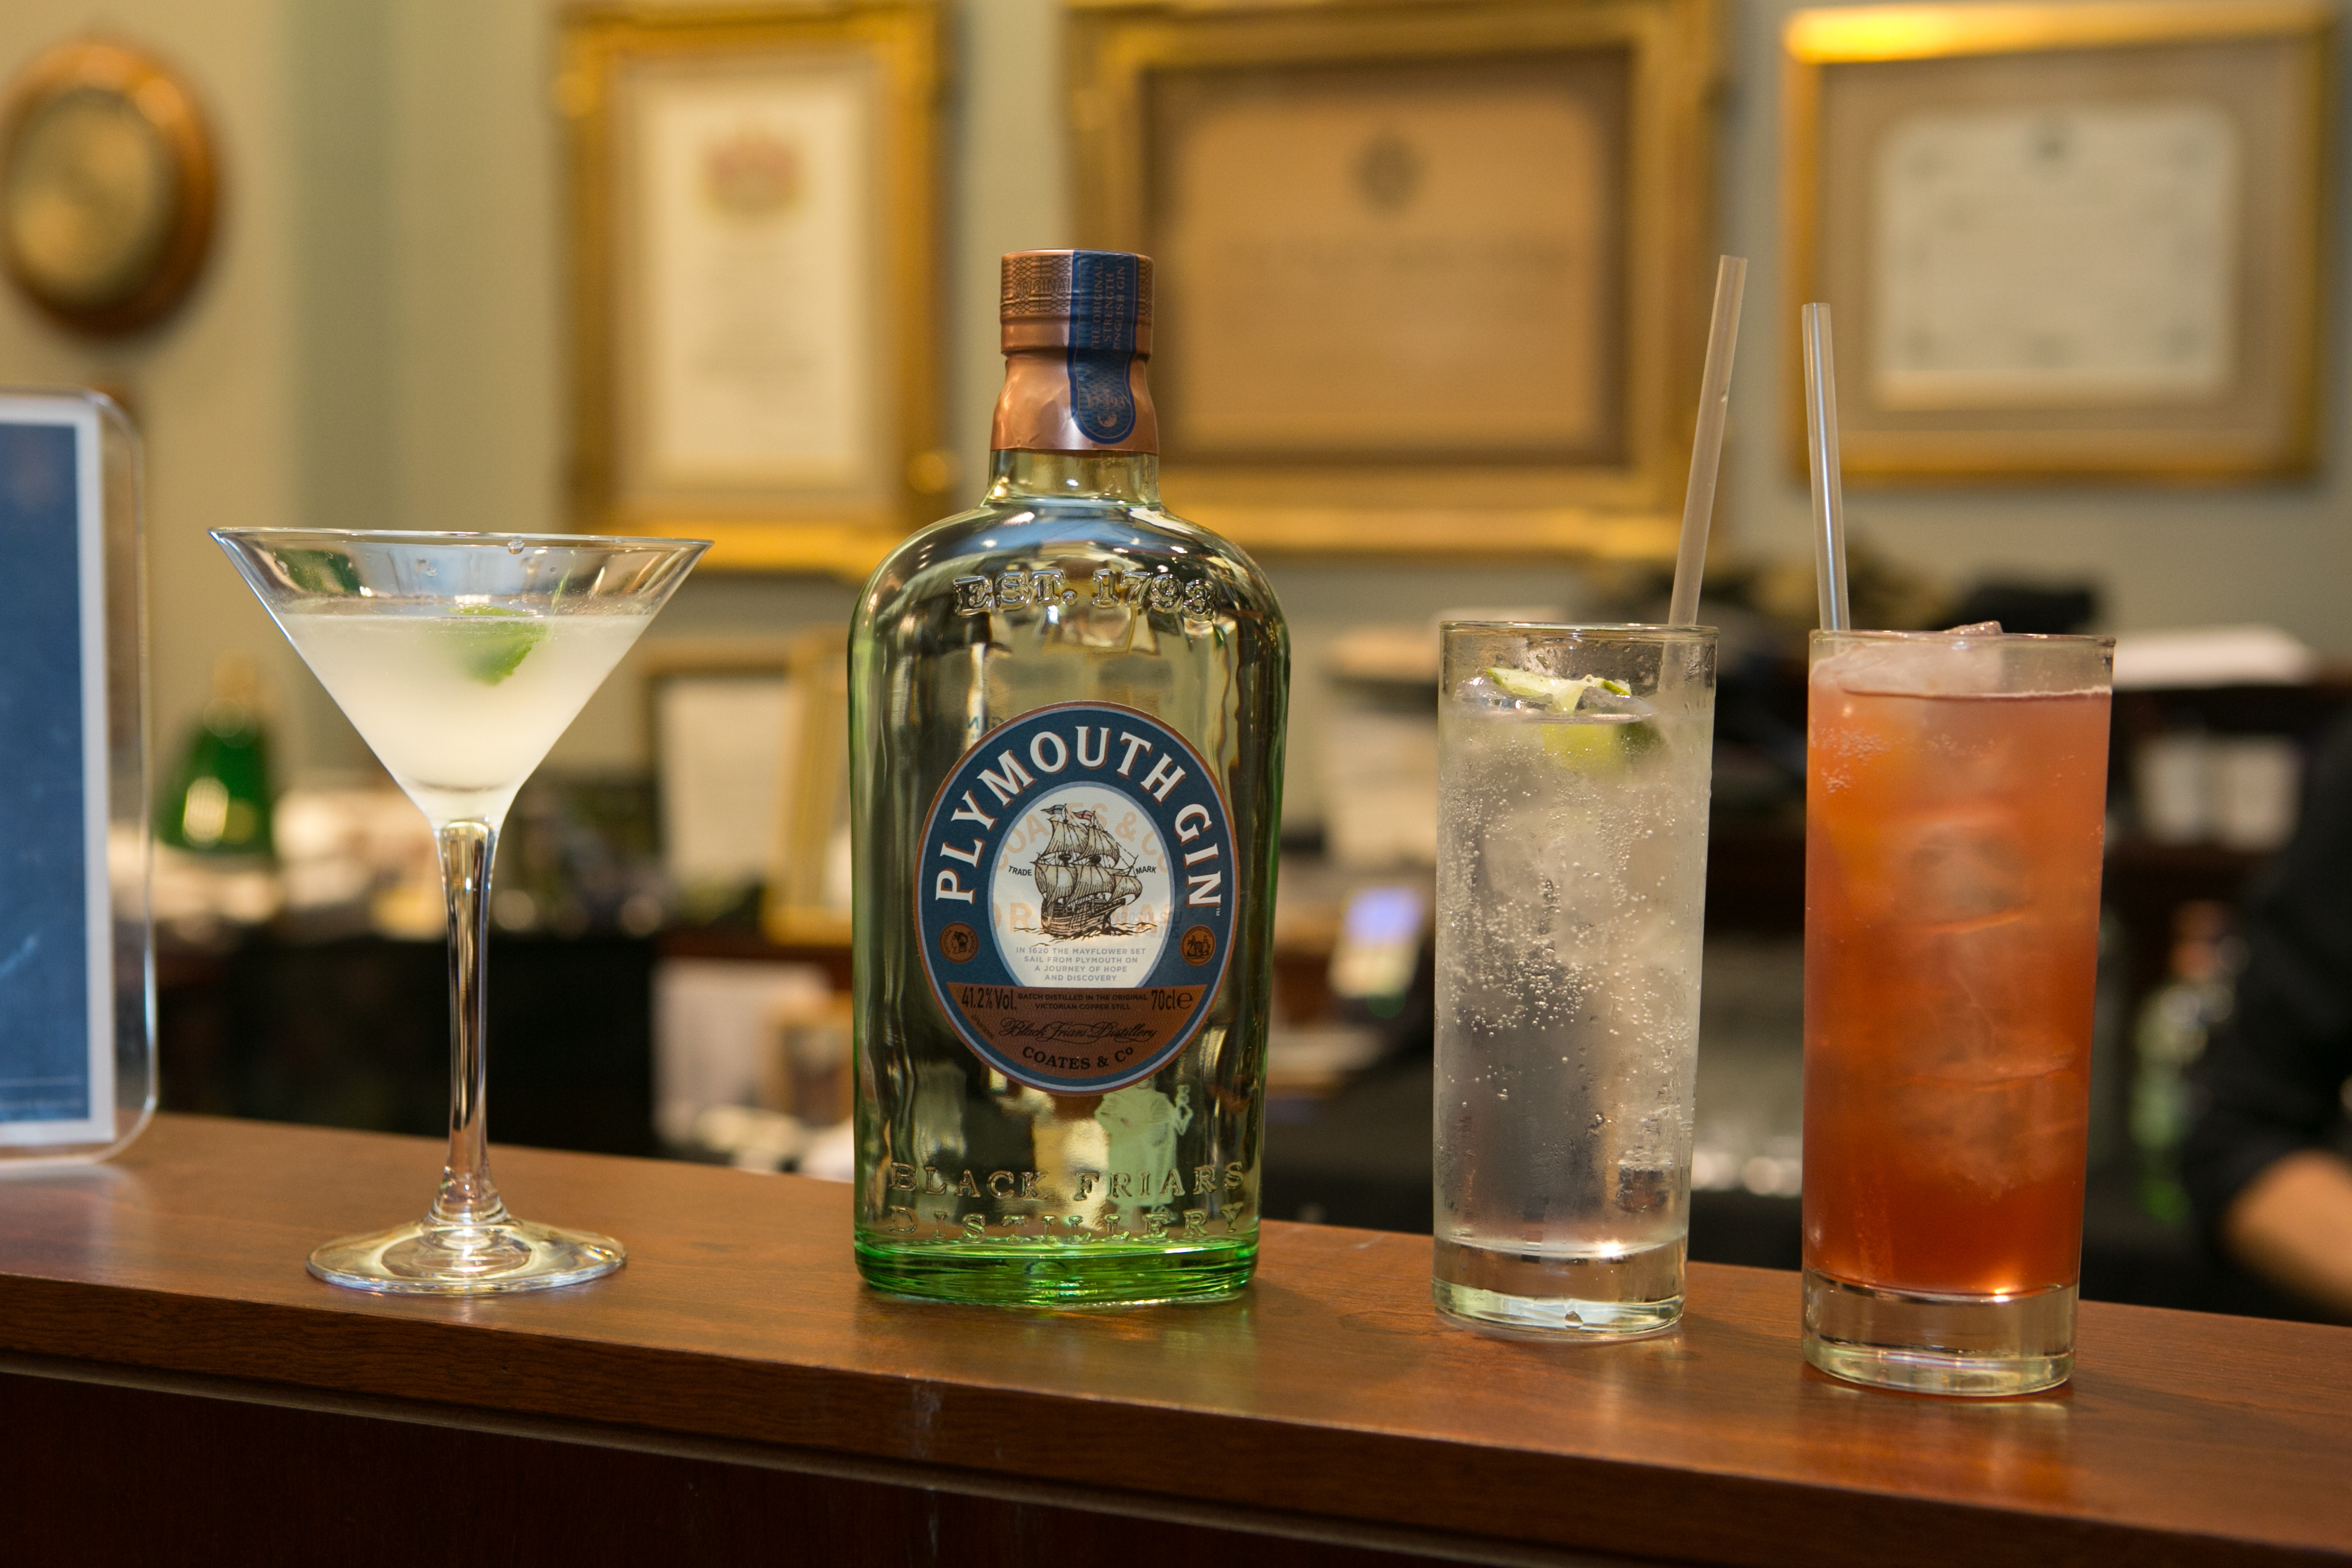 Archive opening with Plymouth Gin